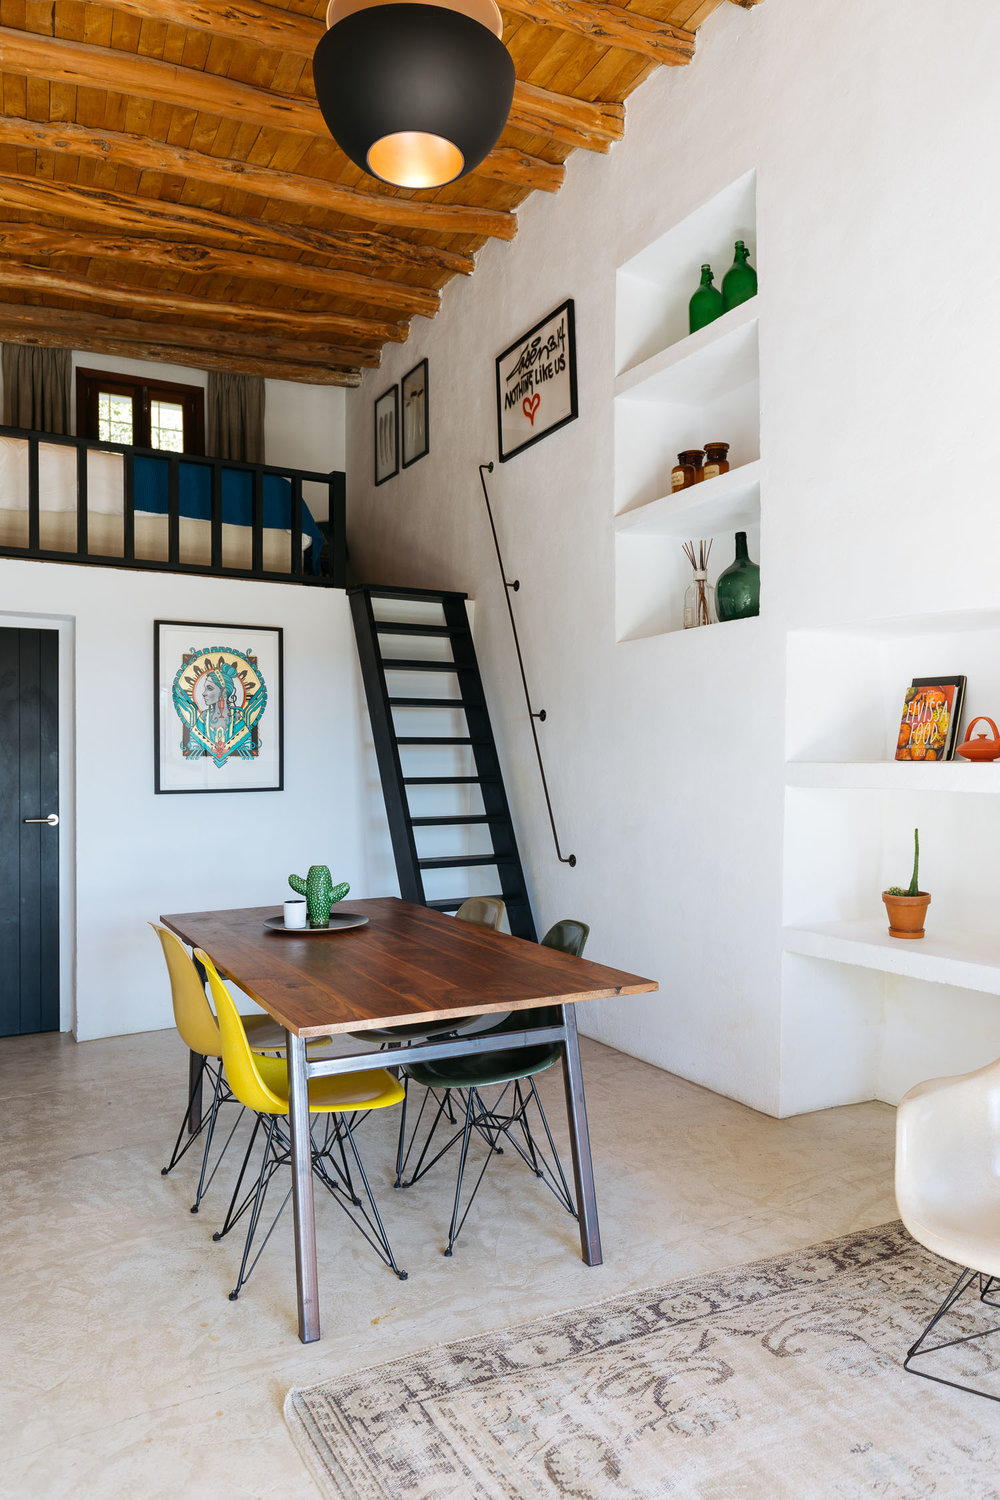 Ibiza_Campo_Loft_interior_architecture_photography_On_a_hazy_morning_Amsterdam236.jpg